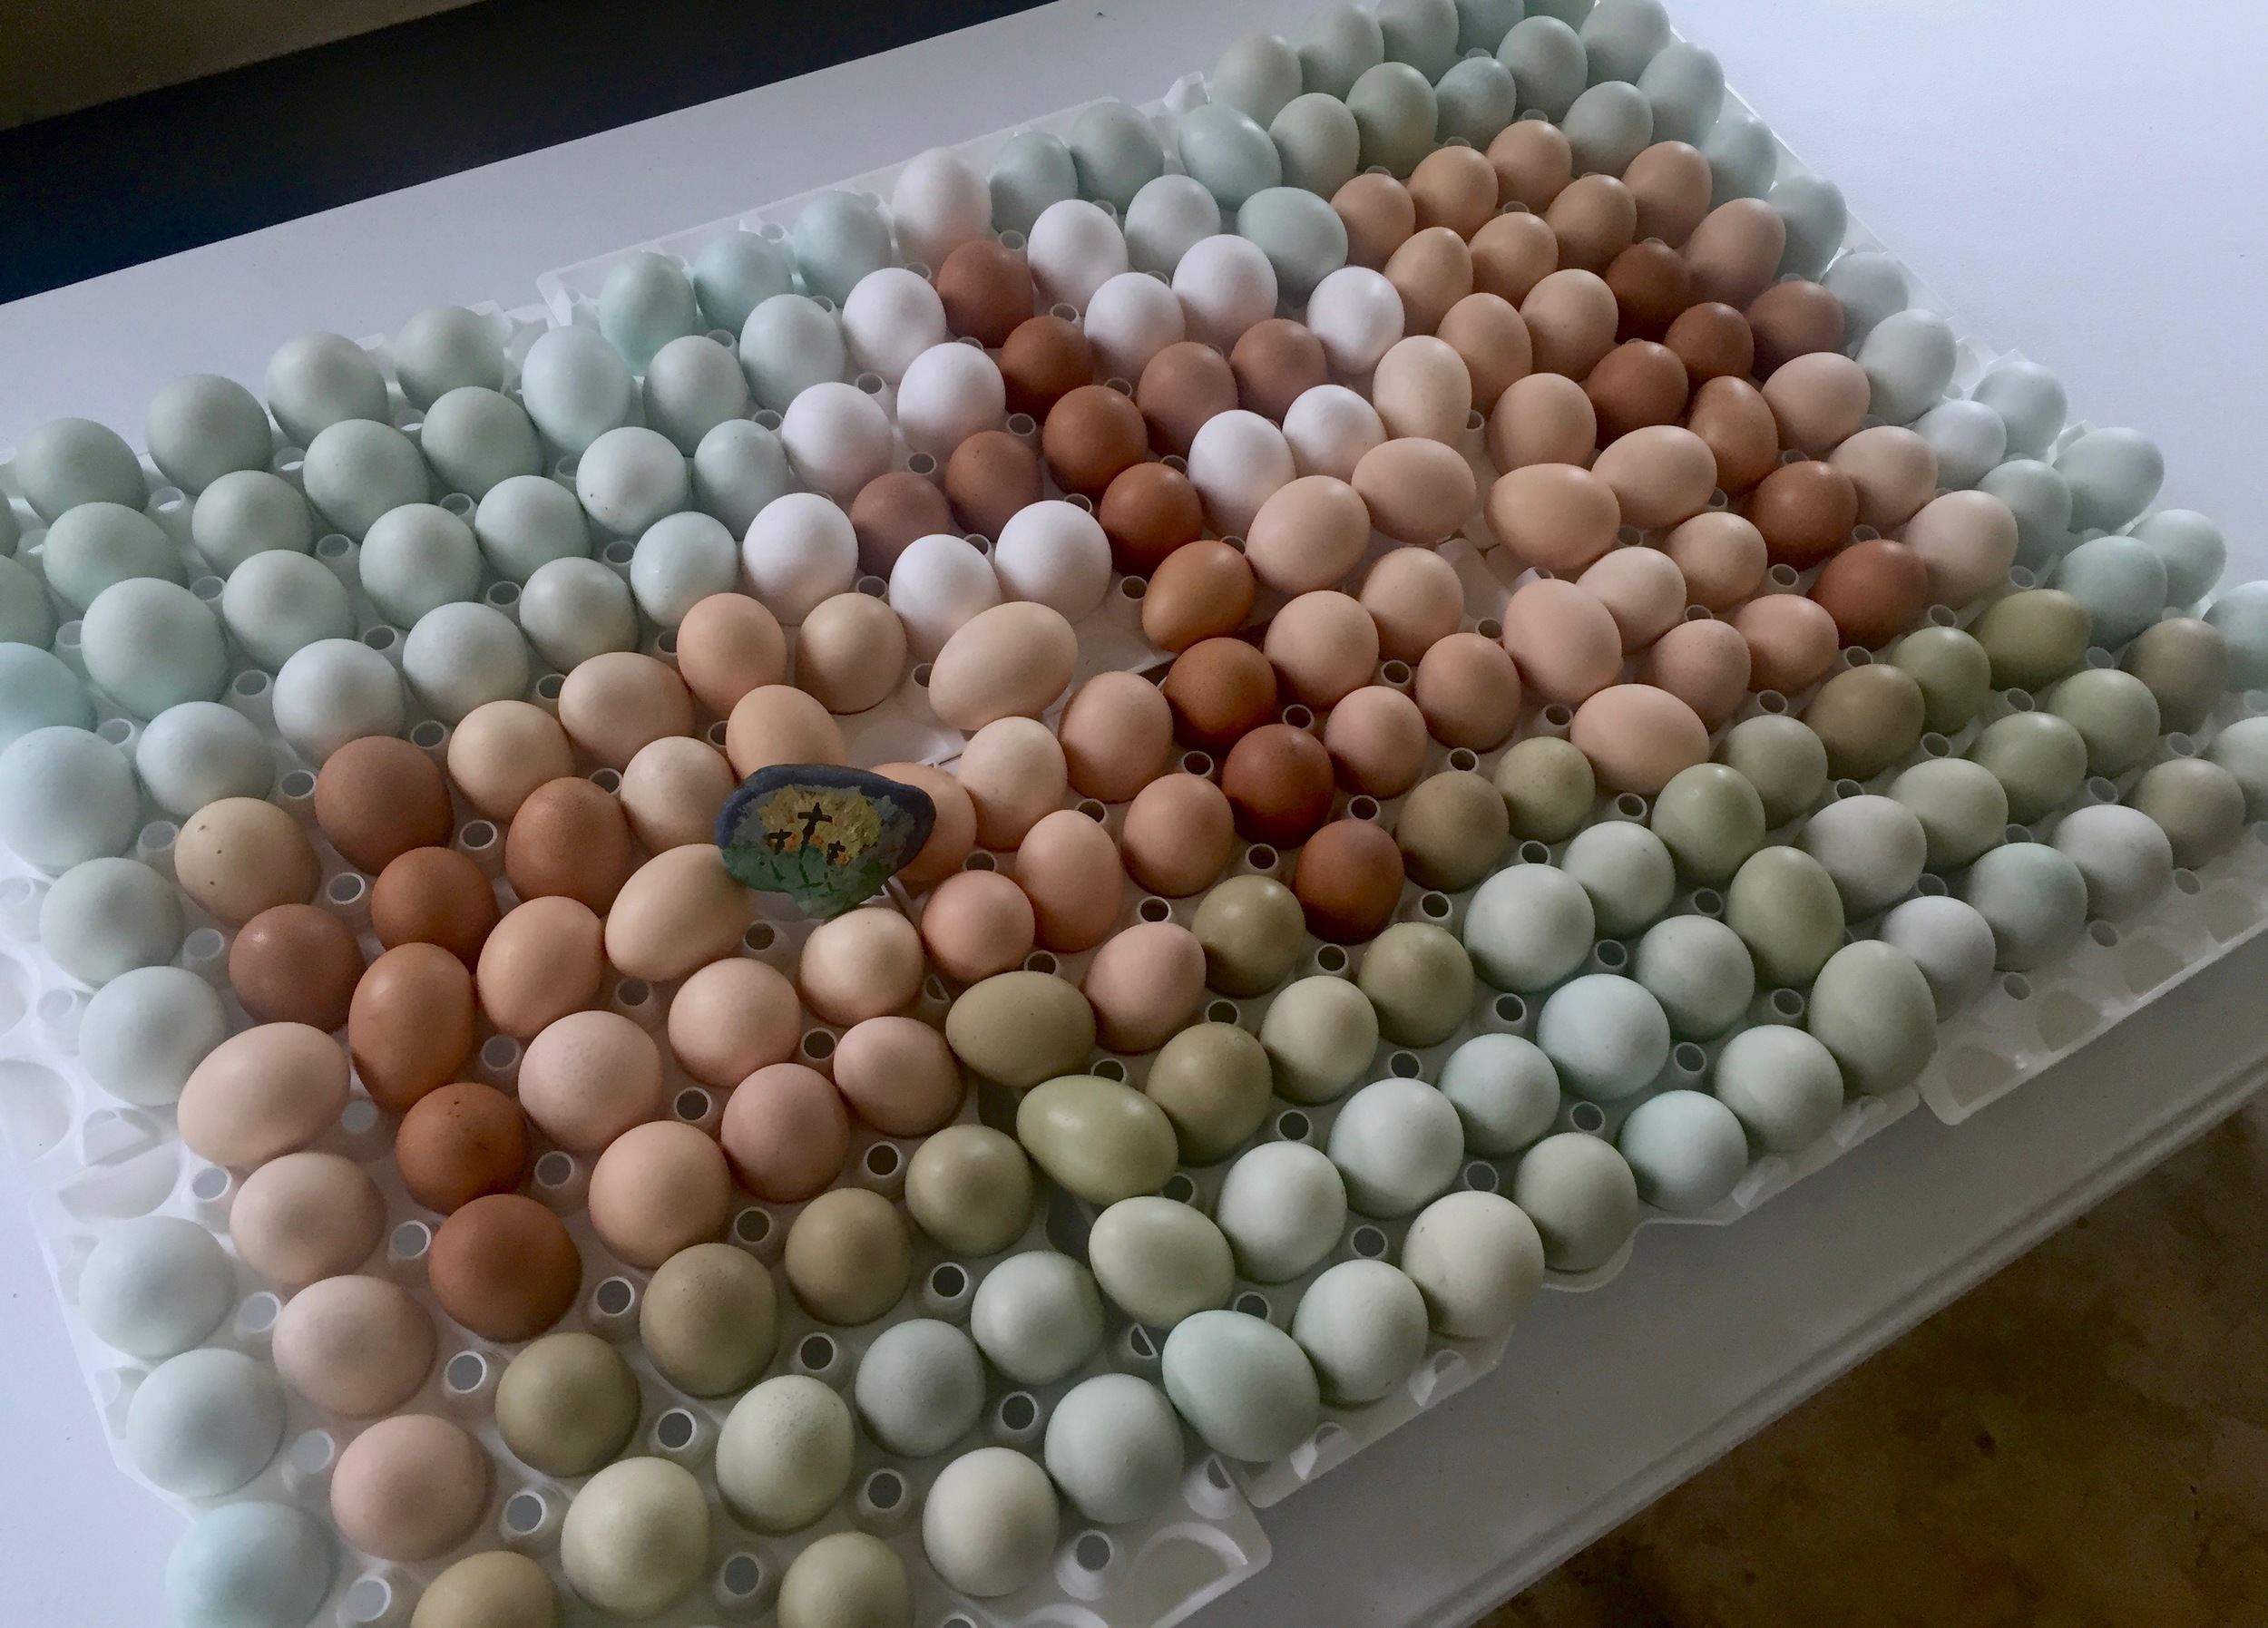 250 fresh eggs - the colors they were laid.